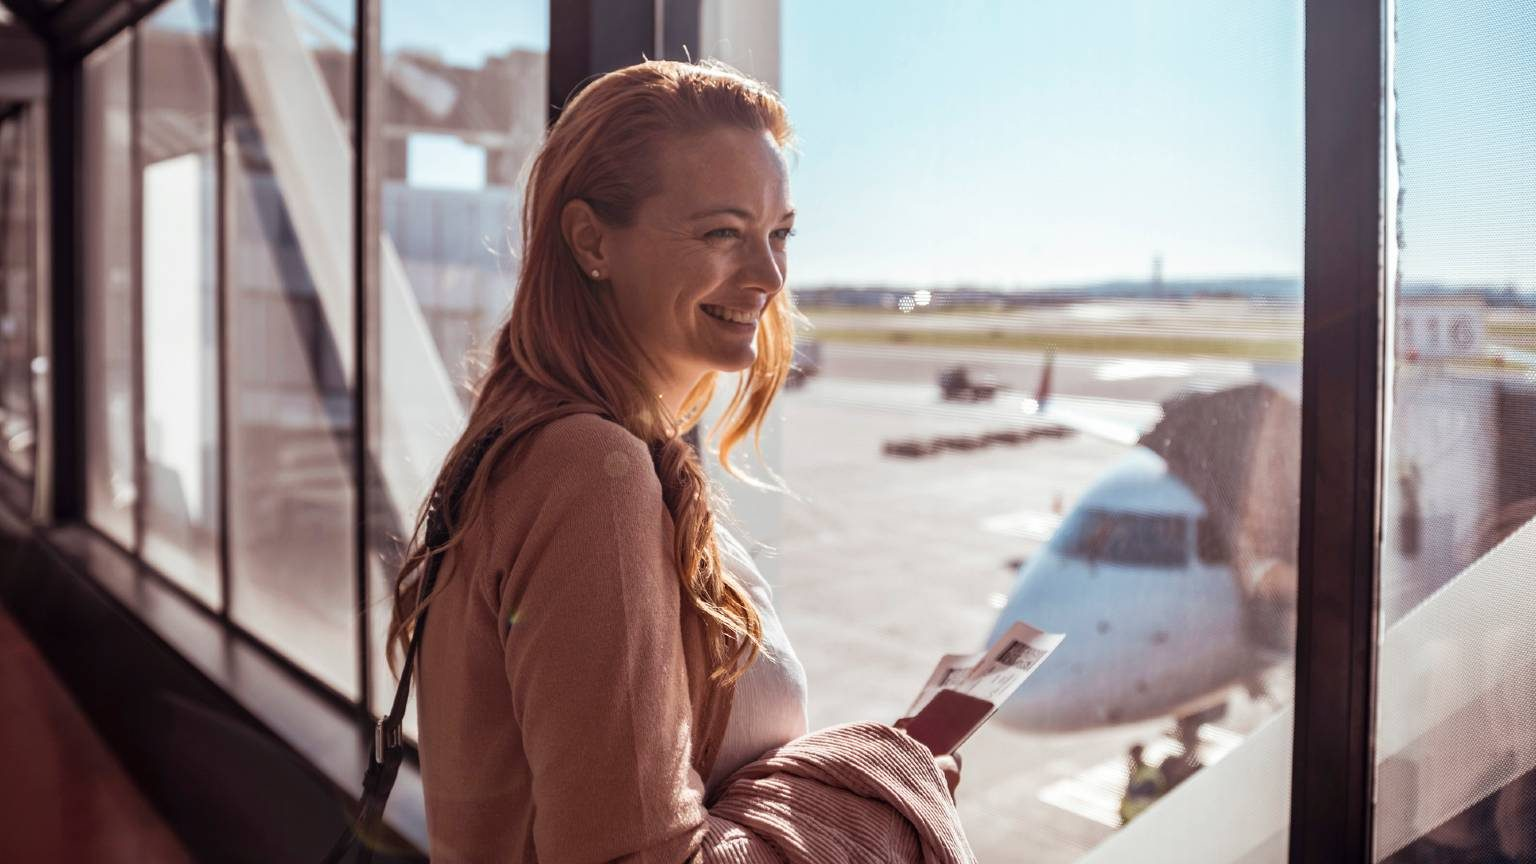 Young woman waiting to board the airplane